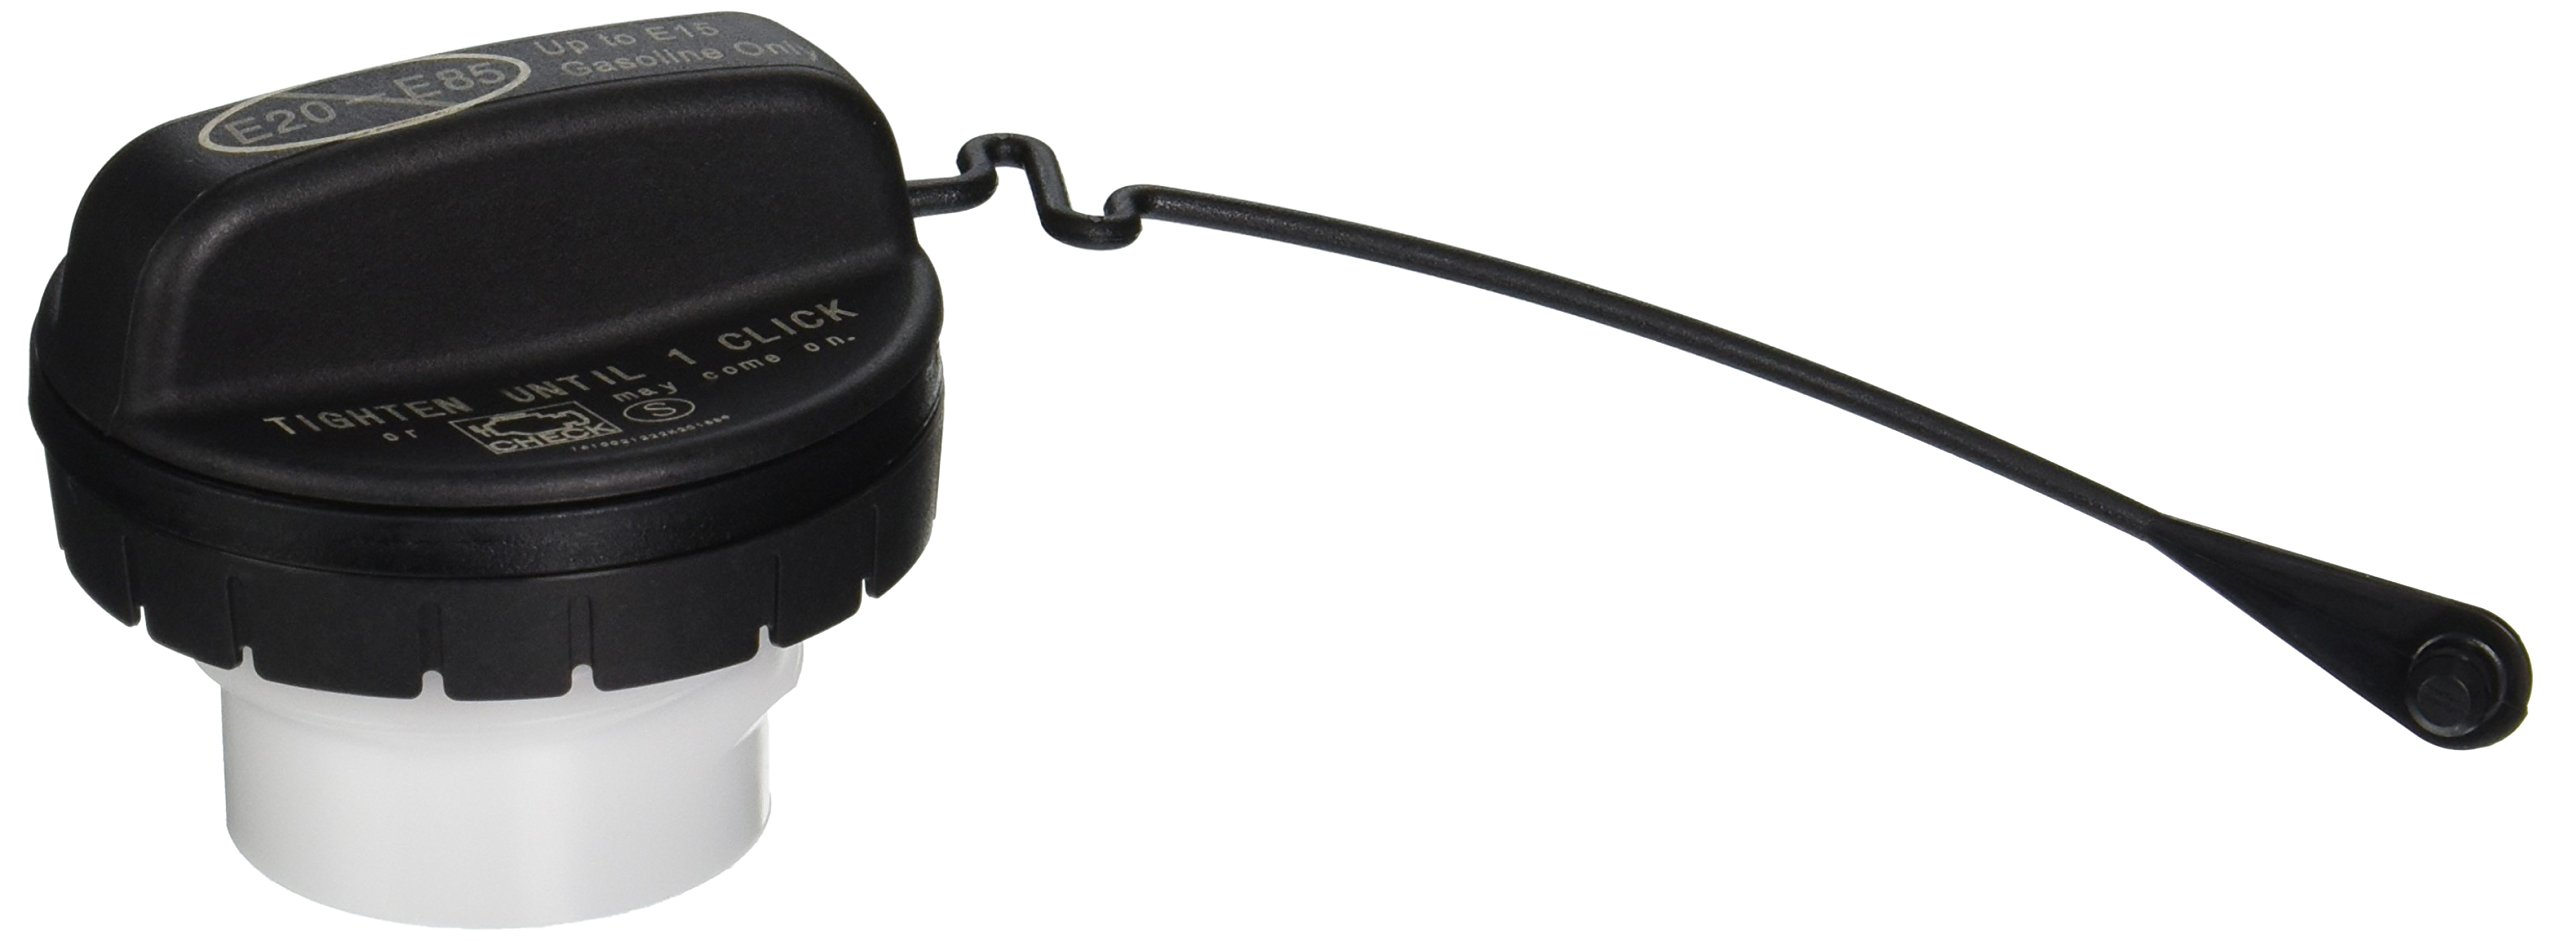 Toyota 77300-07030 Fuel Tank Cap Assembly